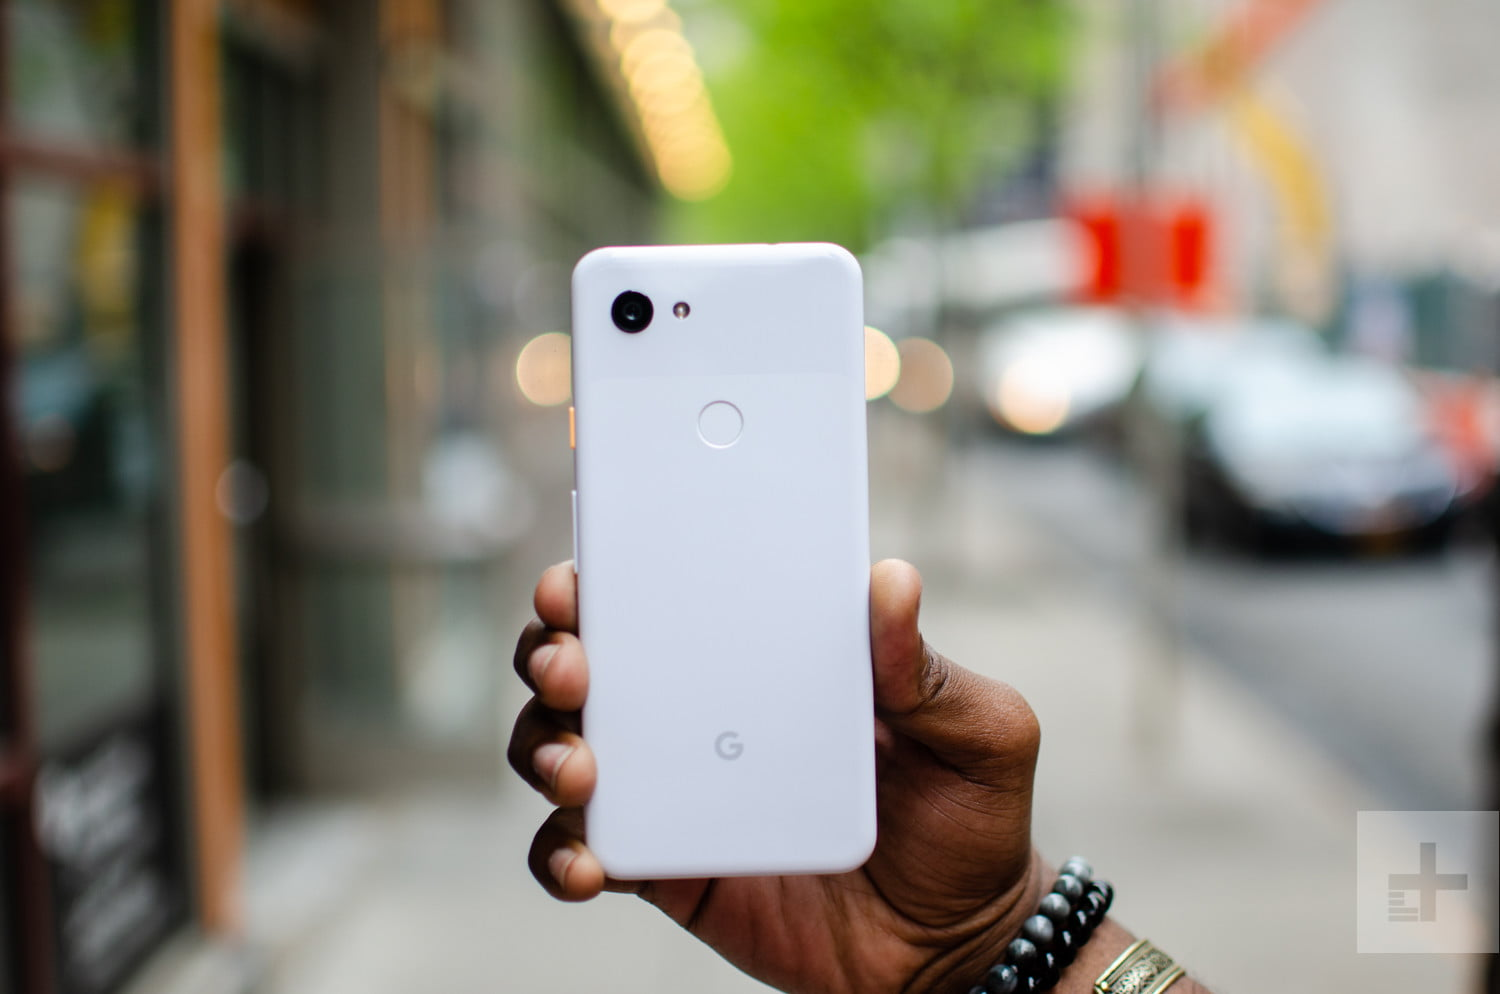 After The Pixel 3a, Google Needs To Step Up Its Hardware